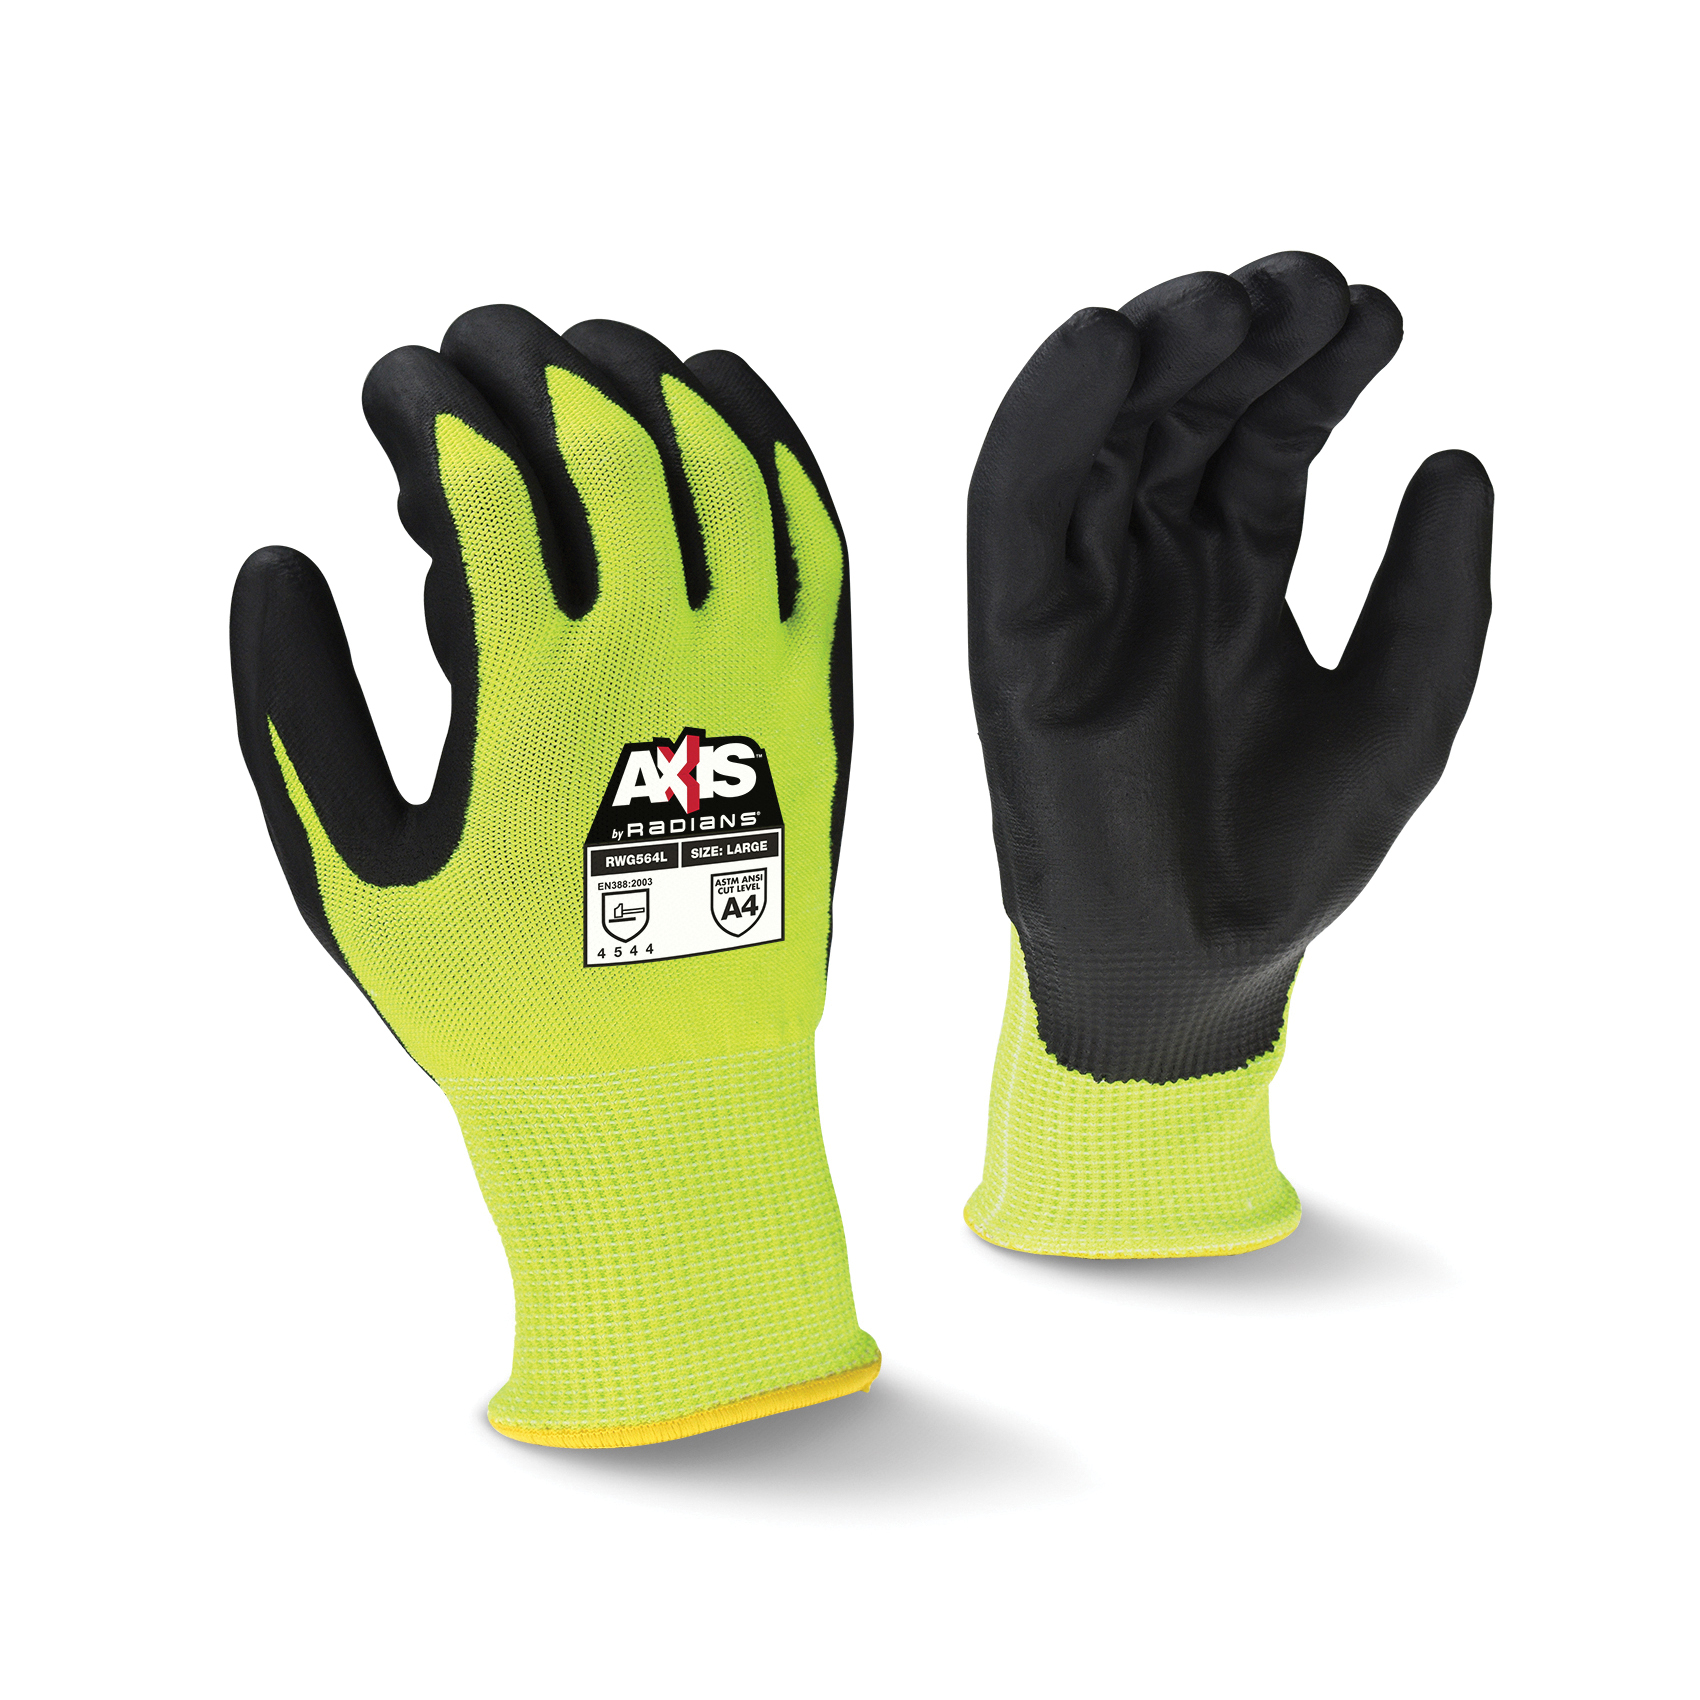 Radians® RWG564M Axis™ Cut-Resistant Gloves, M, Foam Nitrile Coating, HPPE with Fiberglass, Seamless Cuff, Resists: Abrasion, Cut, Tear and Puncture, ANSI Cut-Resistance Level: A4, ANSI Puncture-Resistance Level: 5